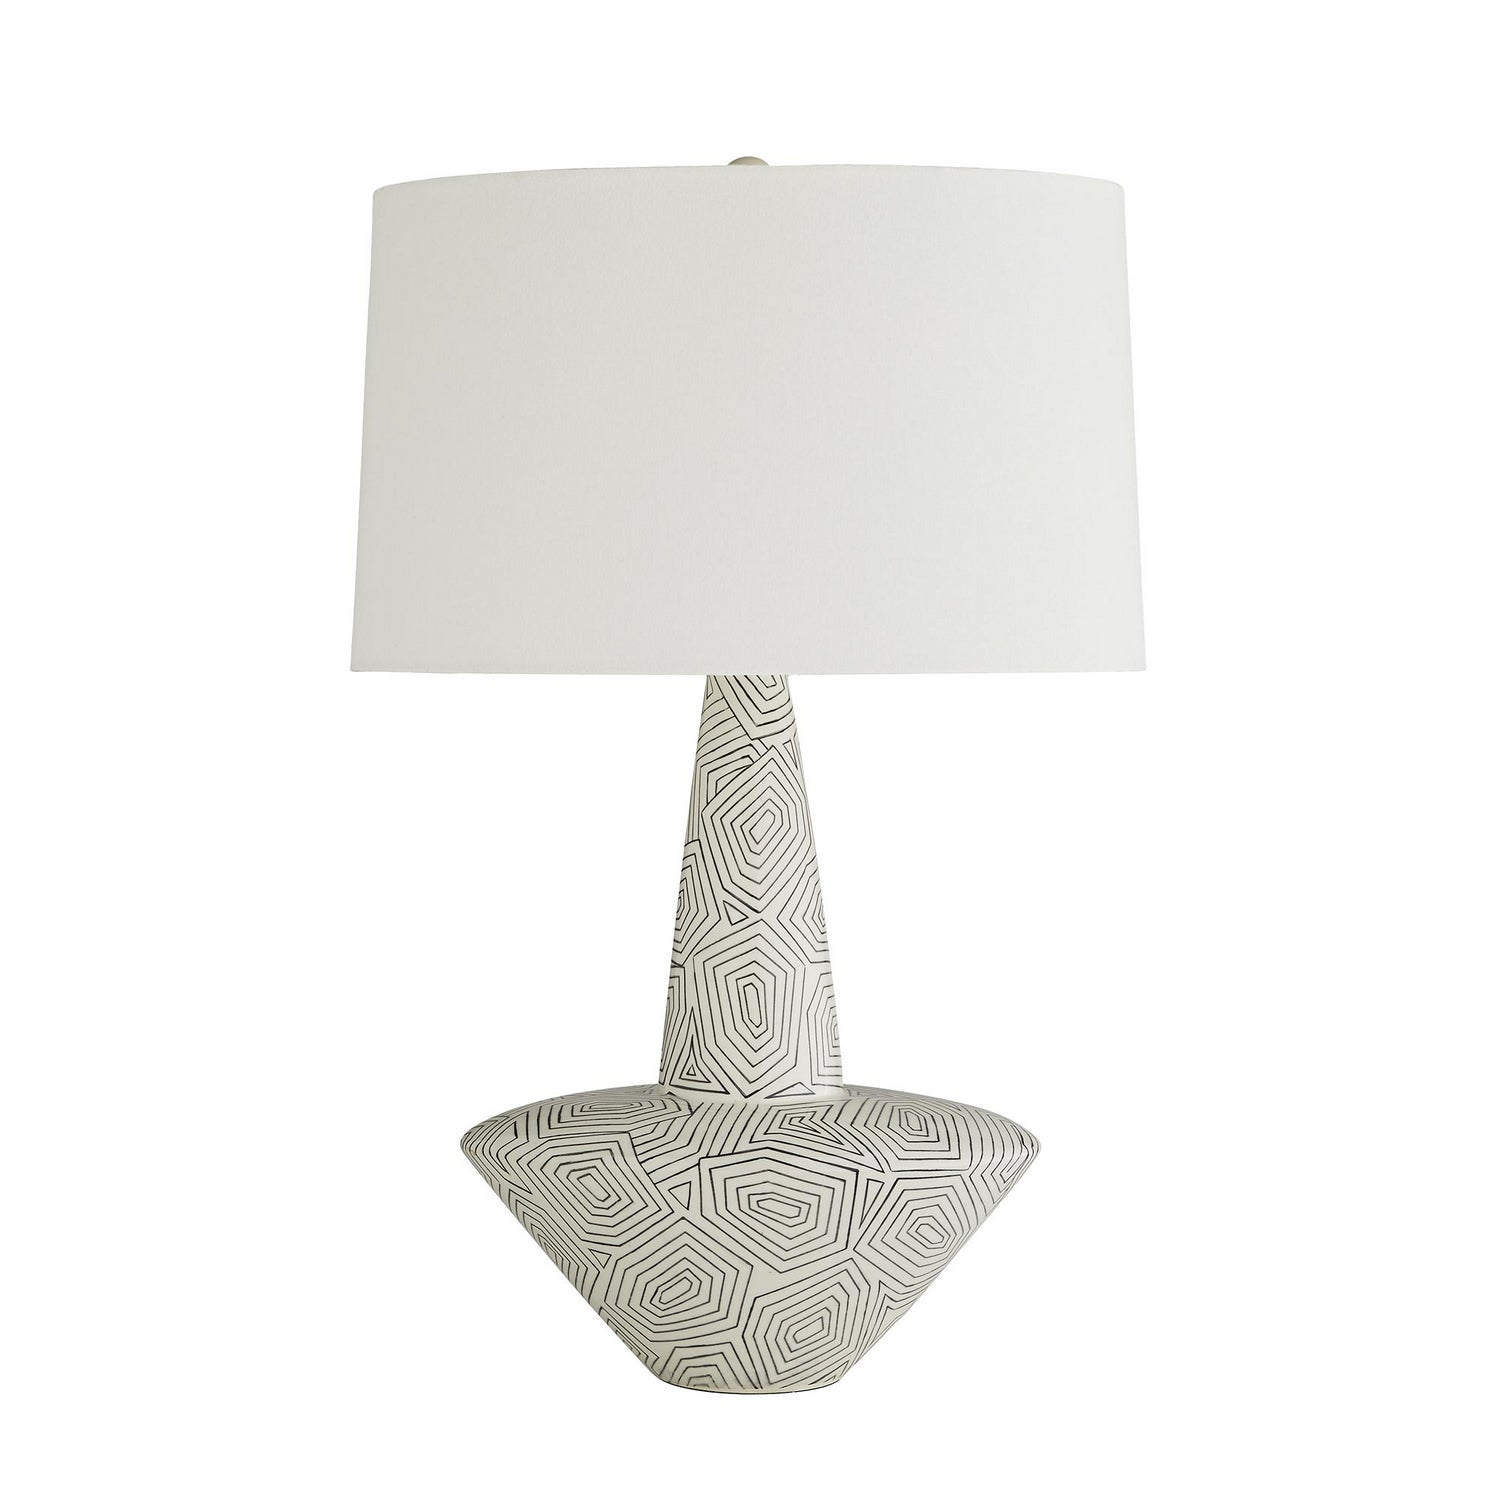 Arteriors - One Light Table Lamp - Toronto - Ivory Gloss &amp, Black Geometric Pattern